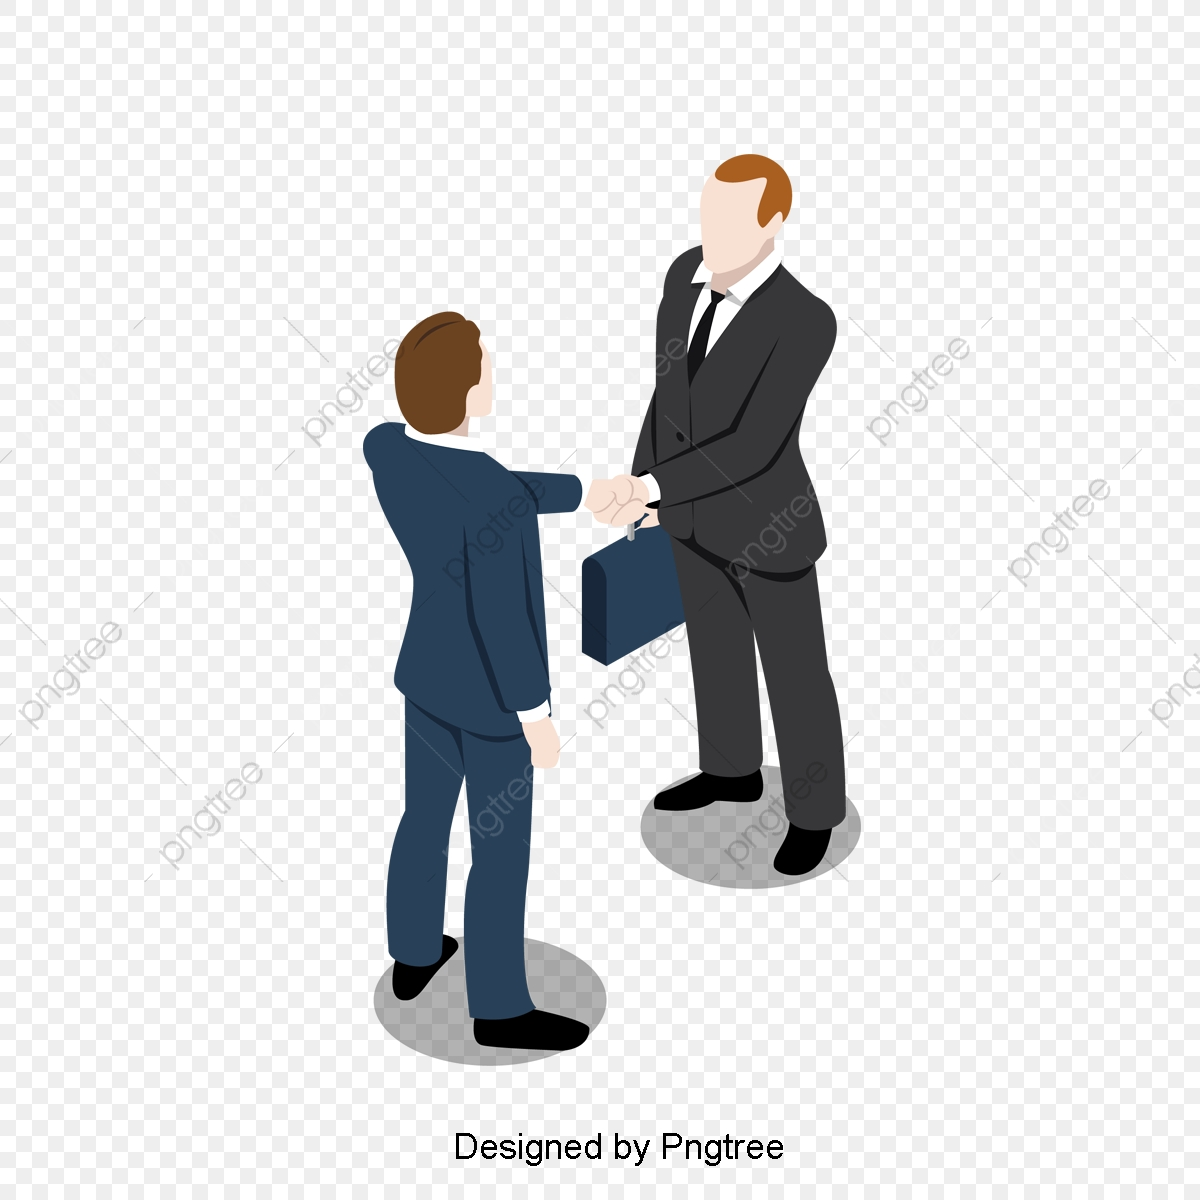 Handshake clipart negotiation. Workplace elements for conversation